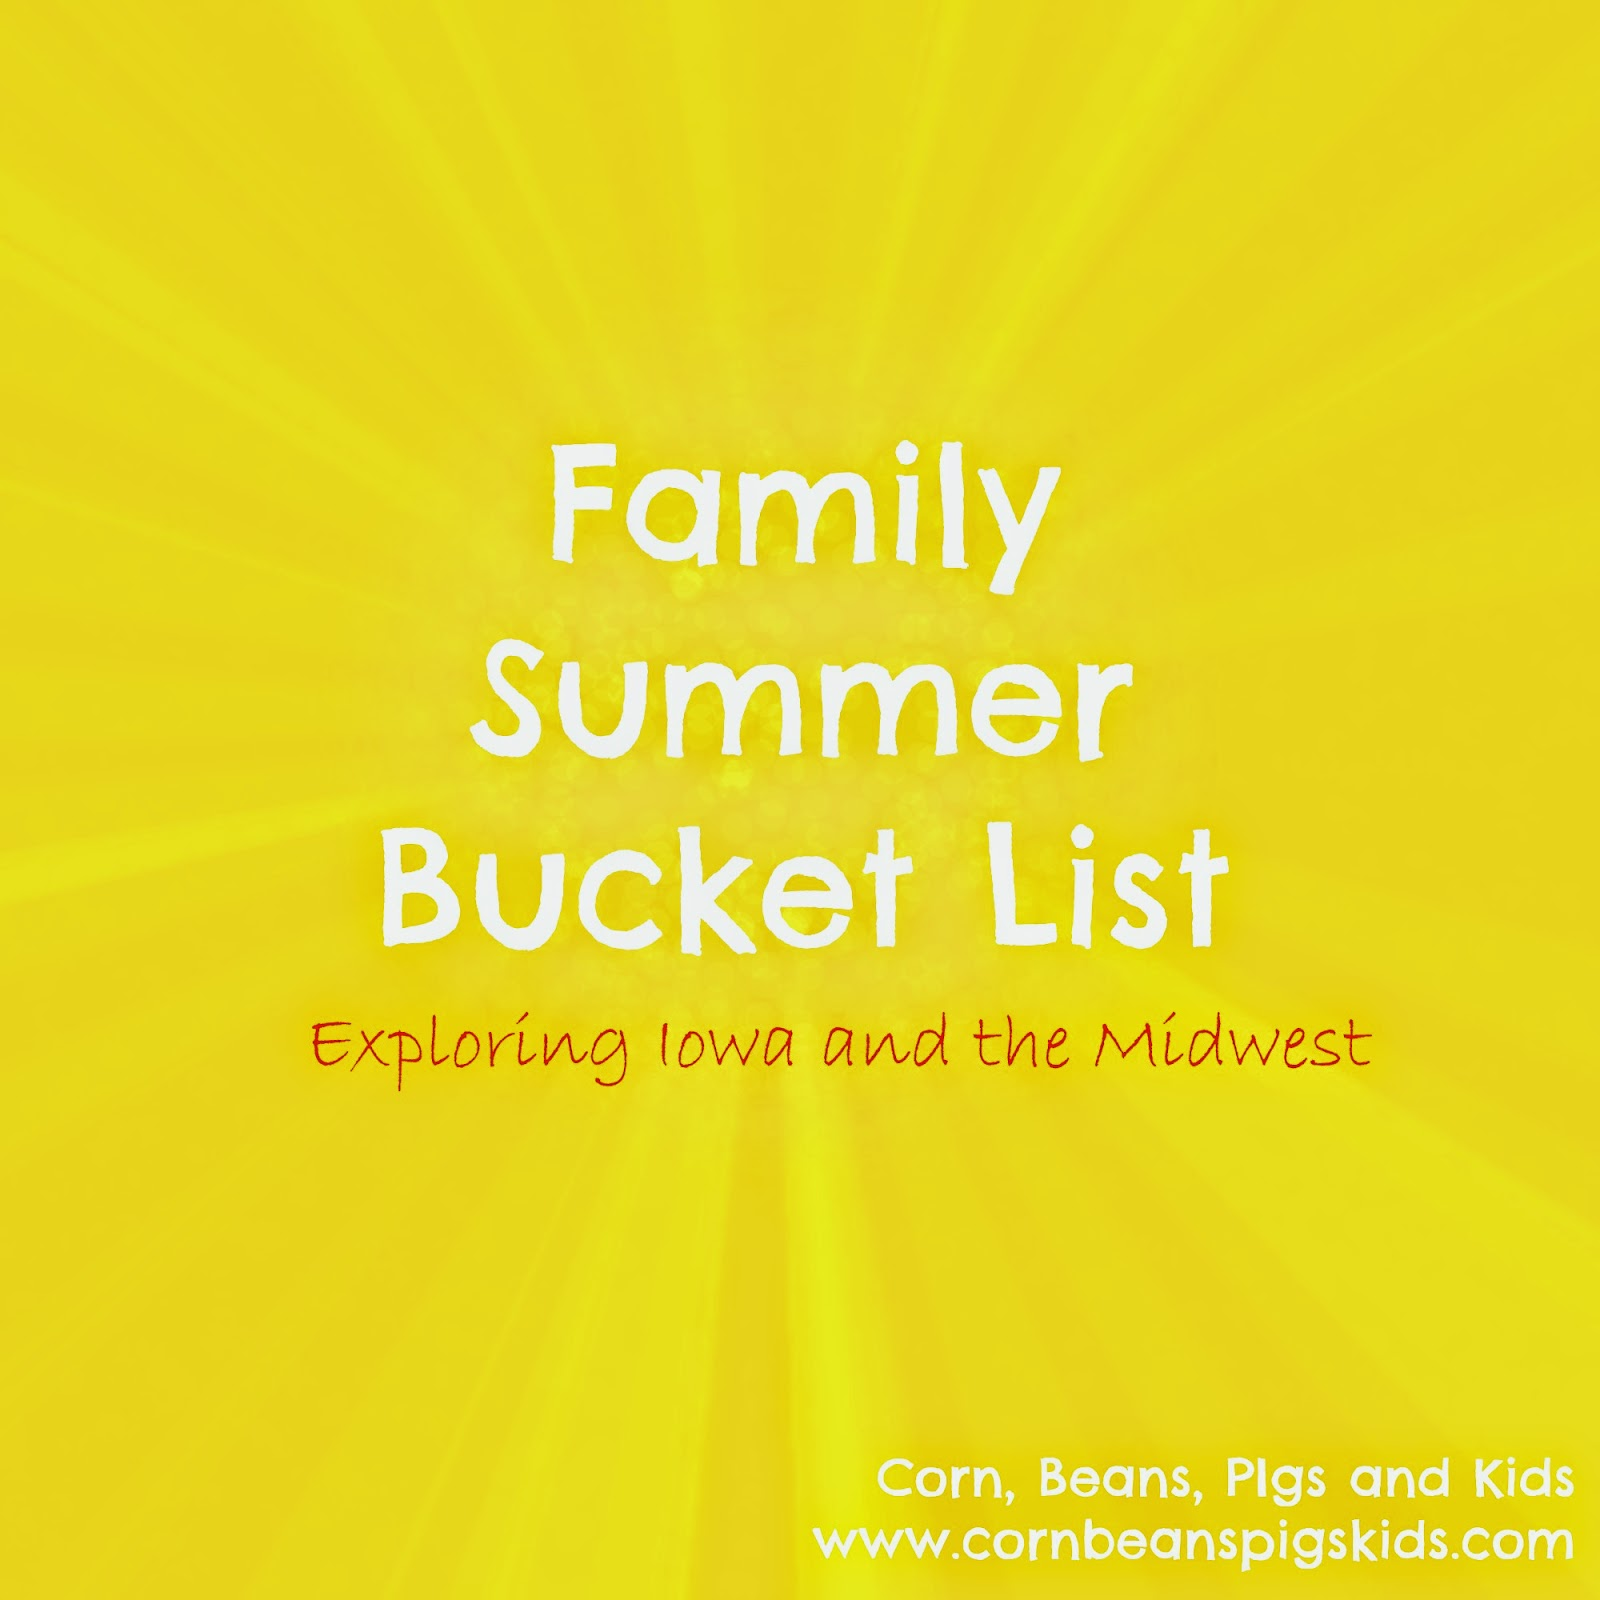 Family Summer Bucket List - Exploring Iowa and the Midwest